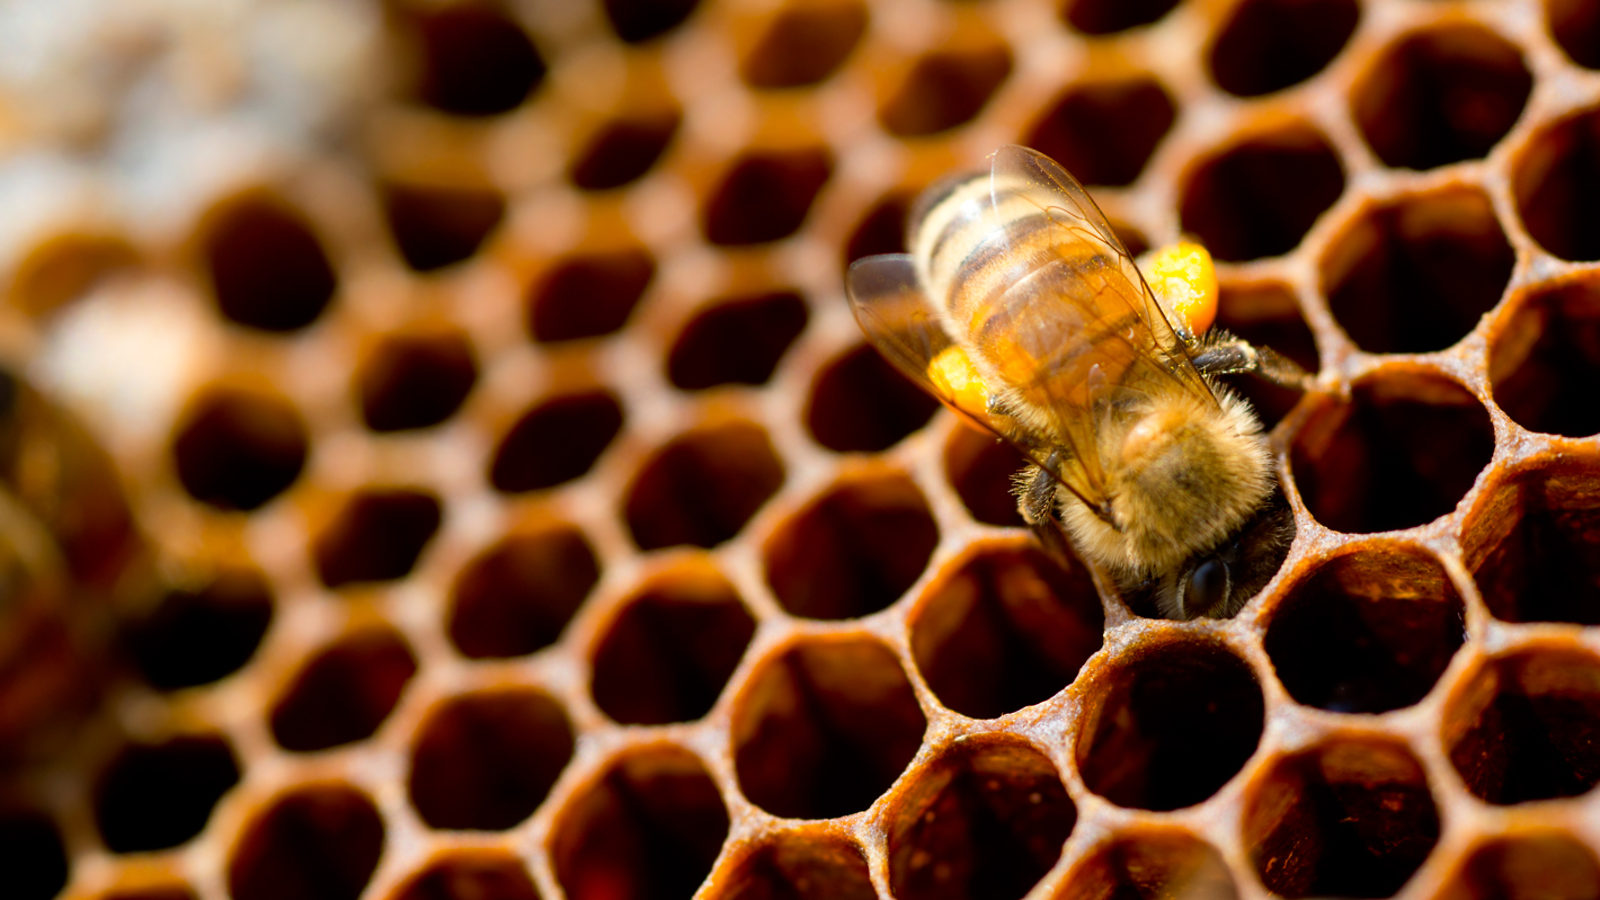 Blog - What Beekeeping Taught Me About Digital Leadership